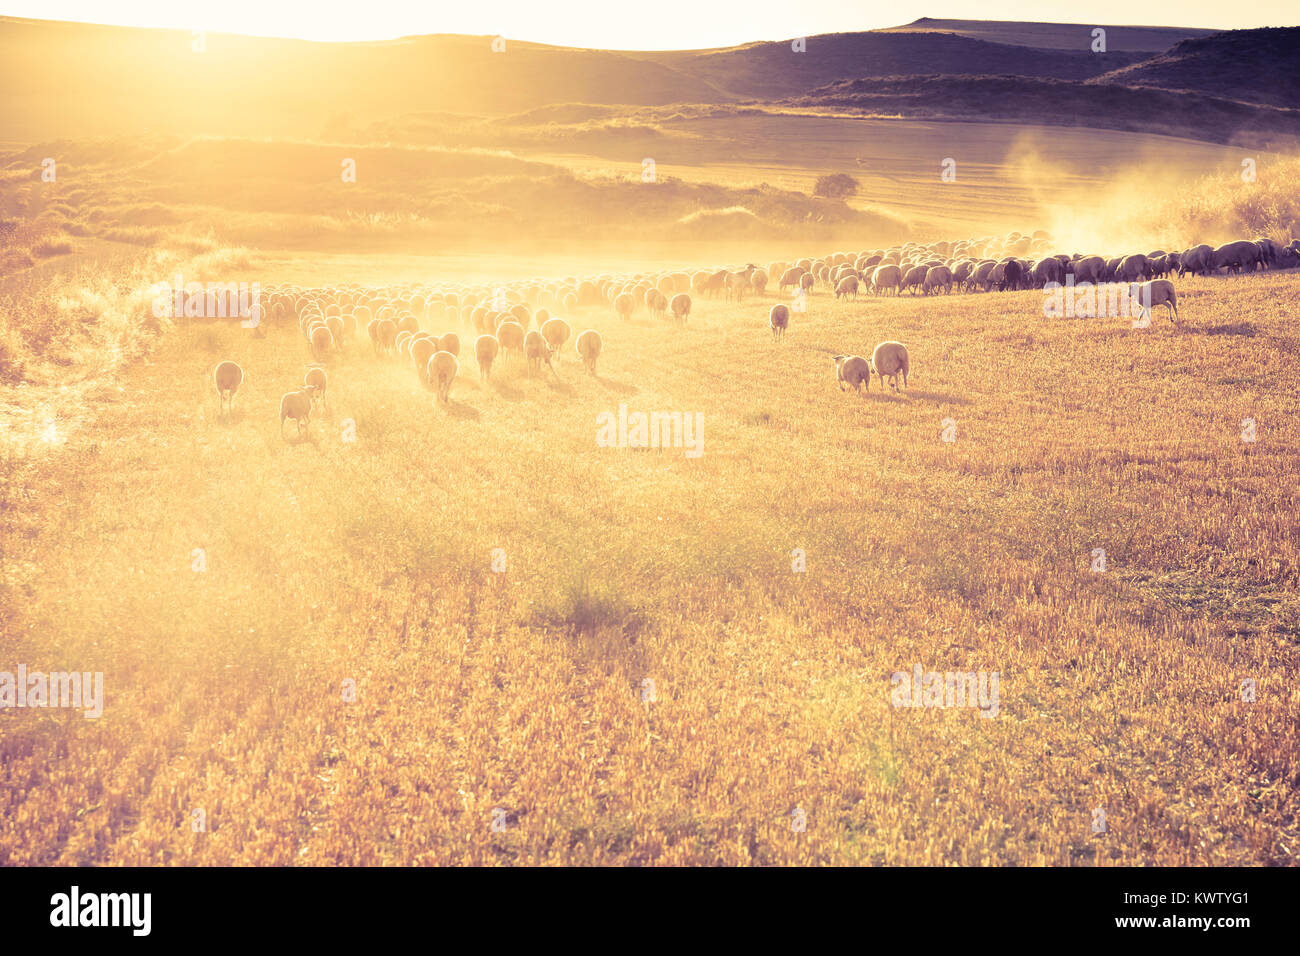 Flock of sheep in a cereal land. Tierra Estella county. Navarre, Spain, Europe. - Stock Image